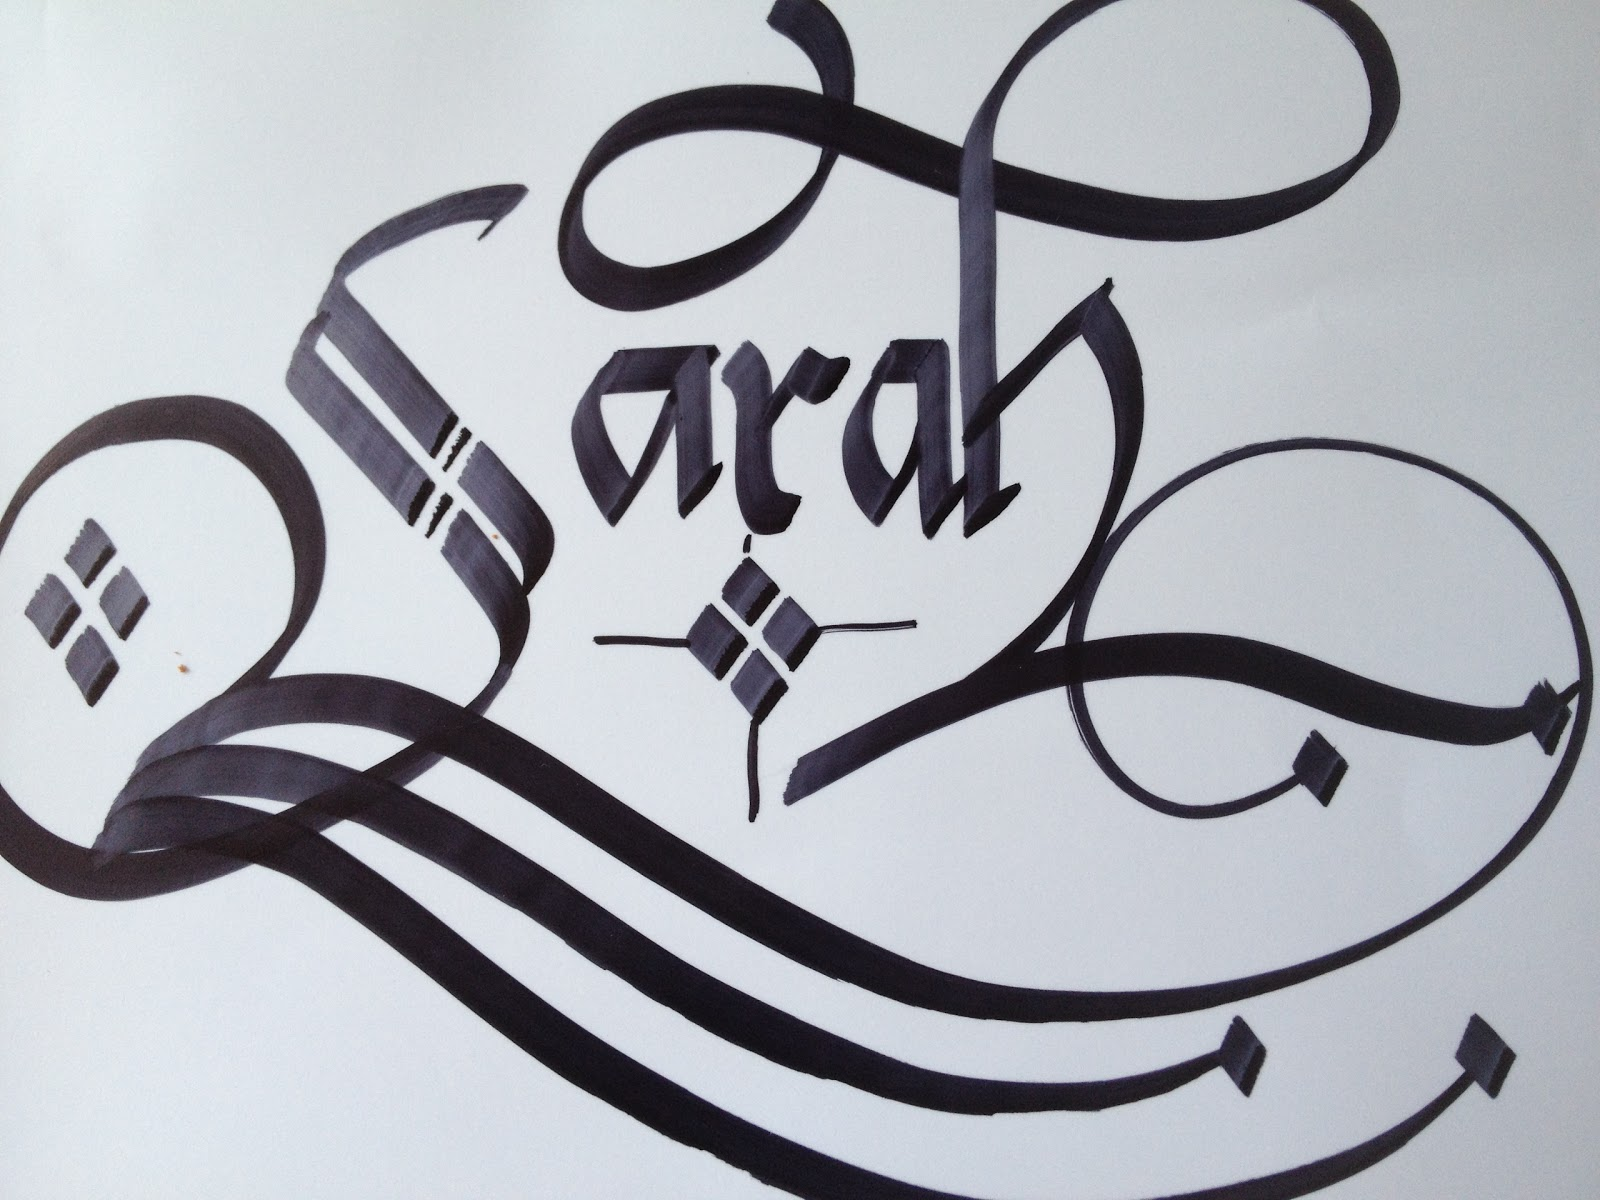 Calligraphy art girl names in calligraphy 3 michelle sarah My name in calligraphy